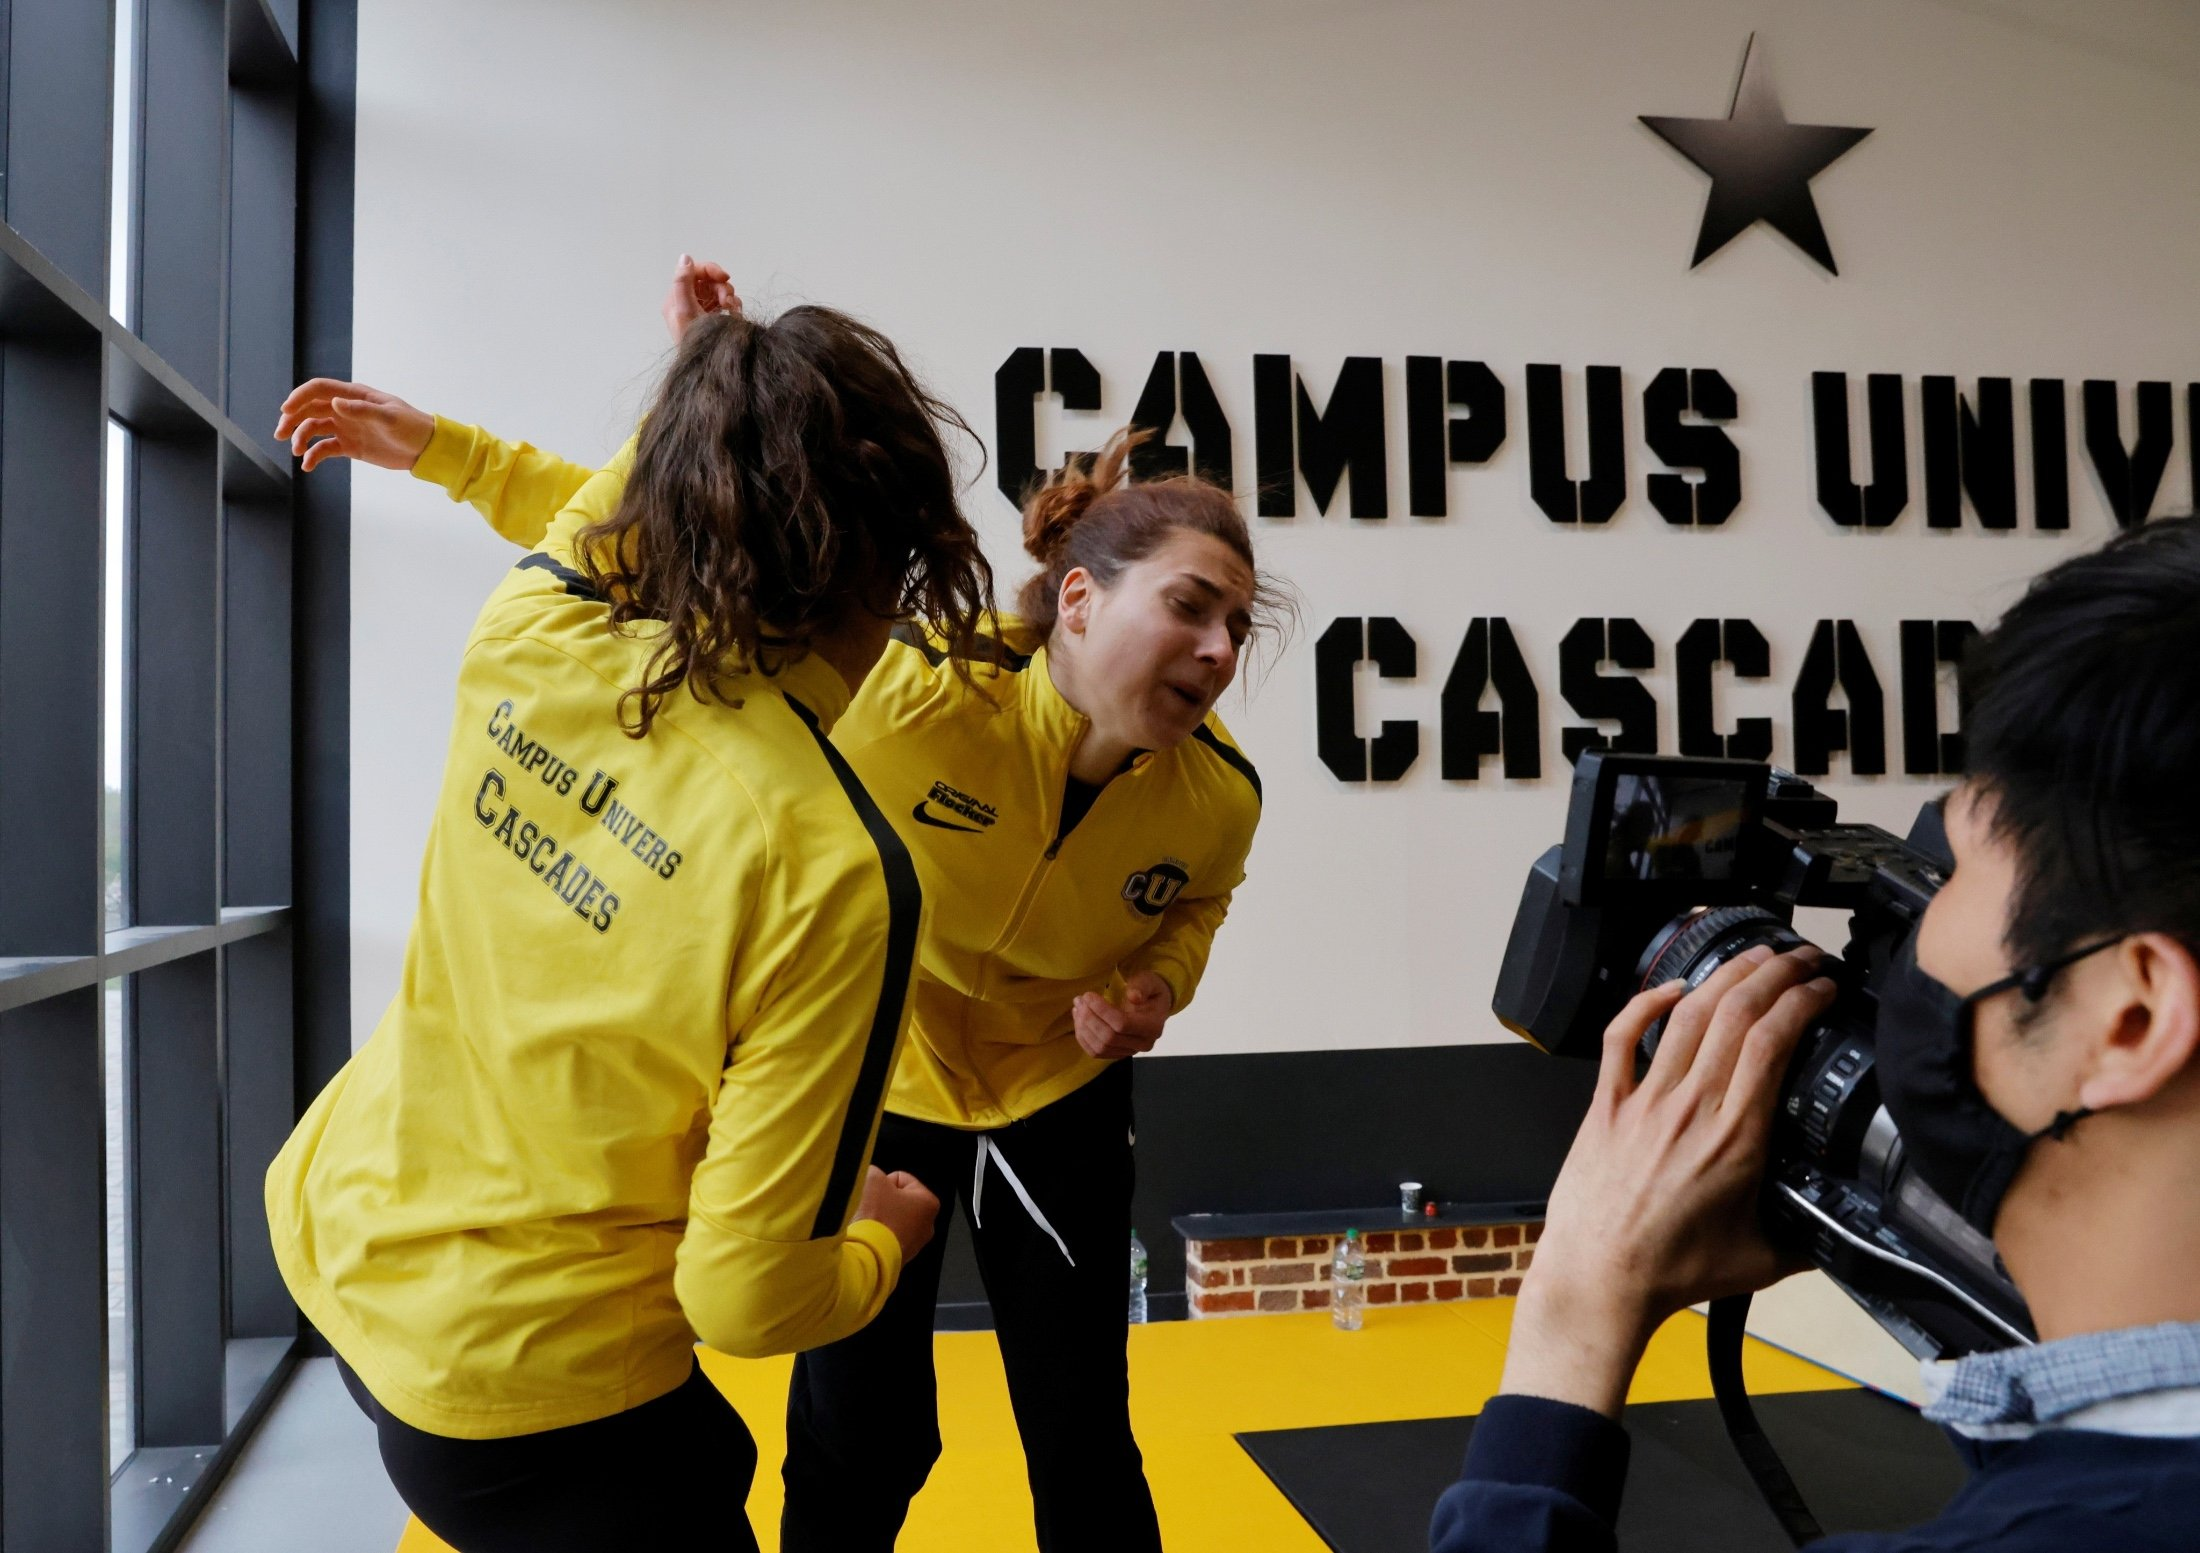 Students Morgane Taillard and Marine Dolle attend a training session at France's Campus Univers Cascade (CUC), a training ground for stuntpeople, in Le Cateau-Cambresis, France, May 4, 2021. (Reuters Photo)